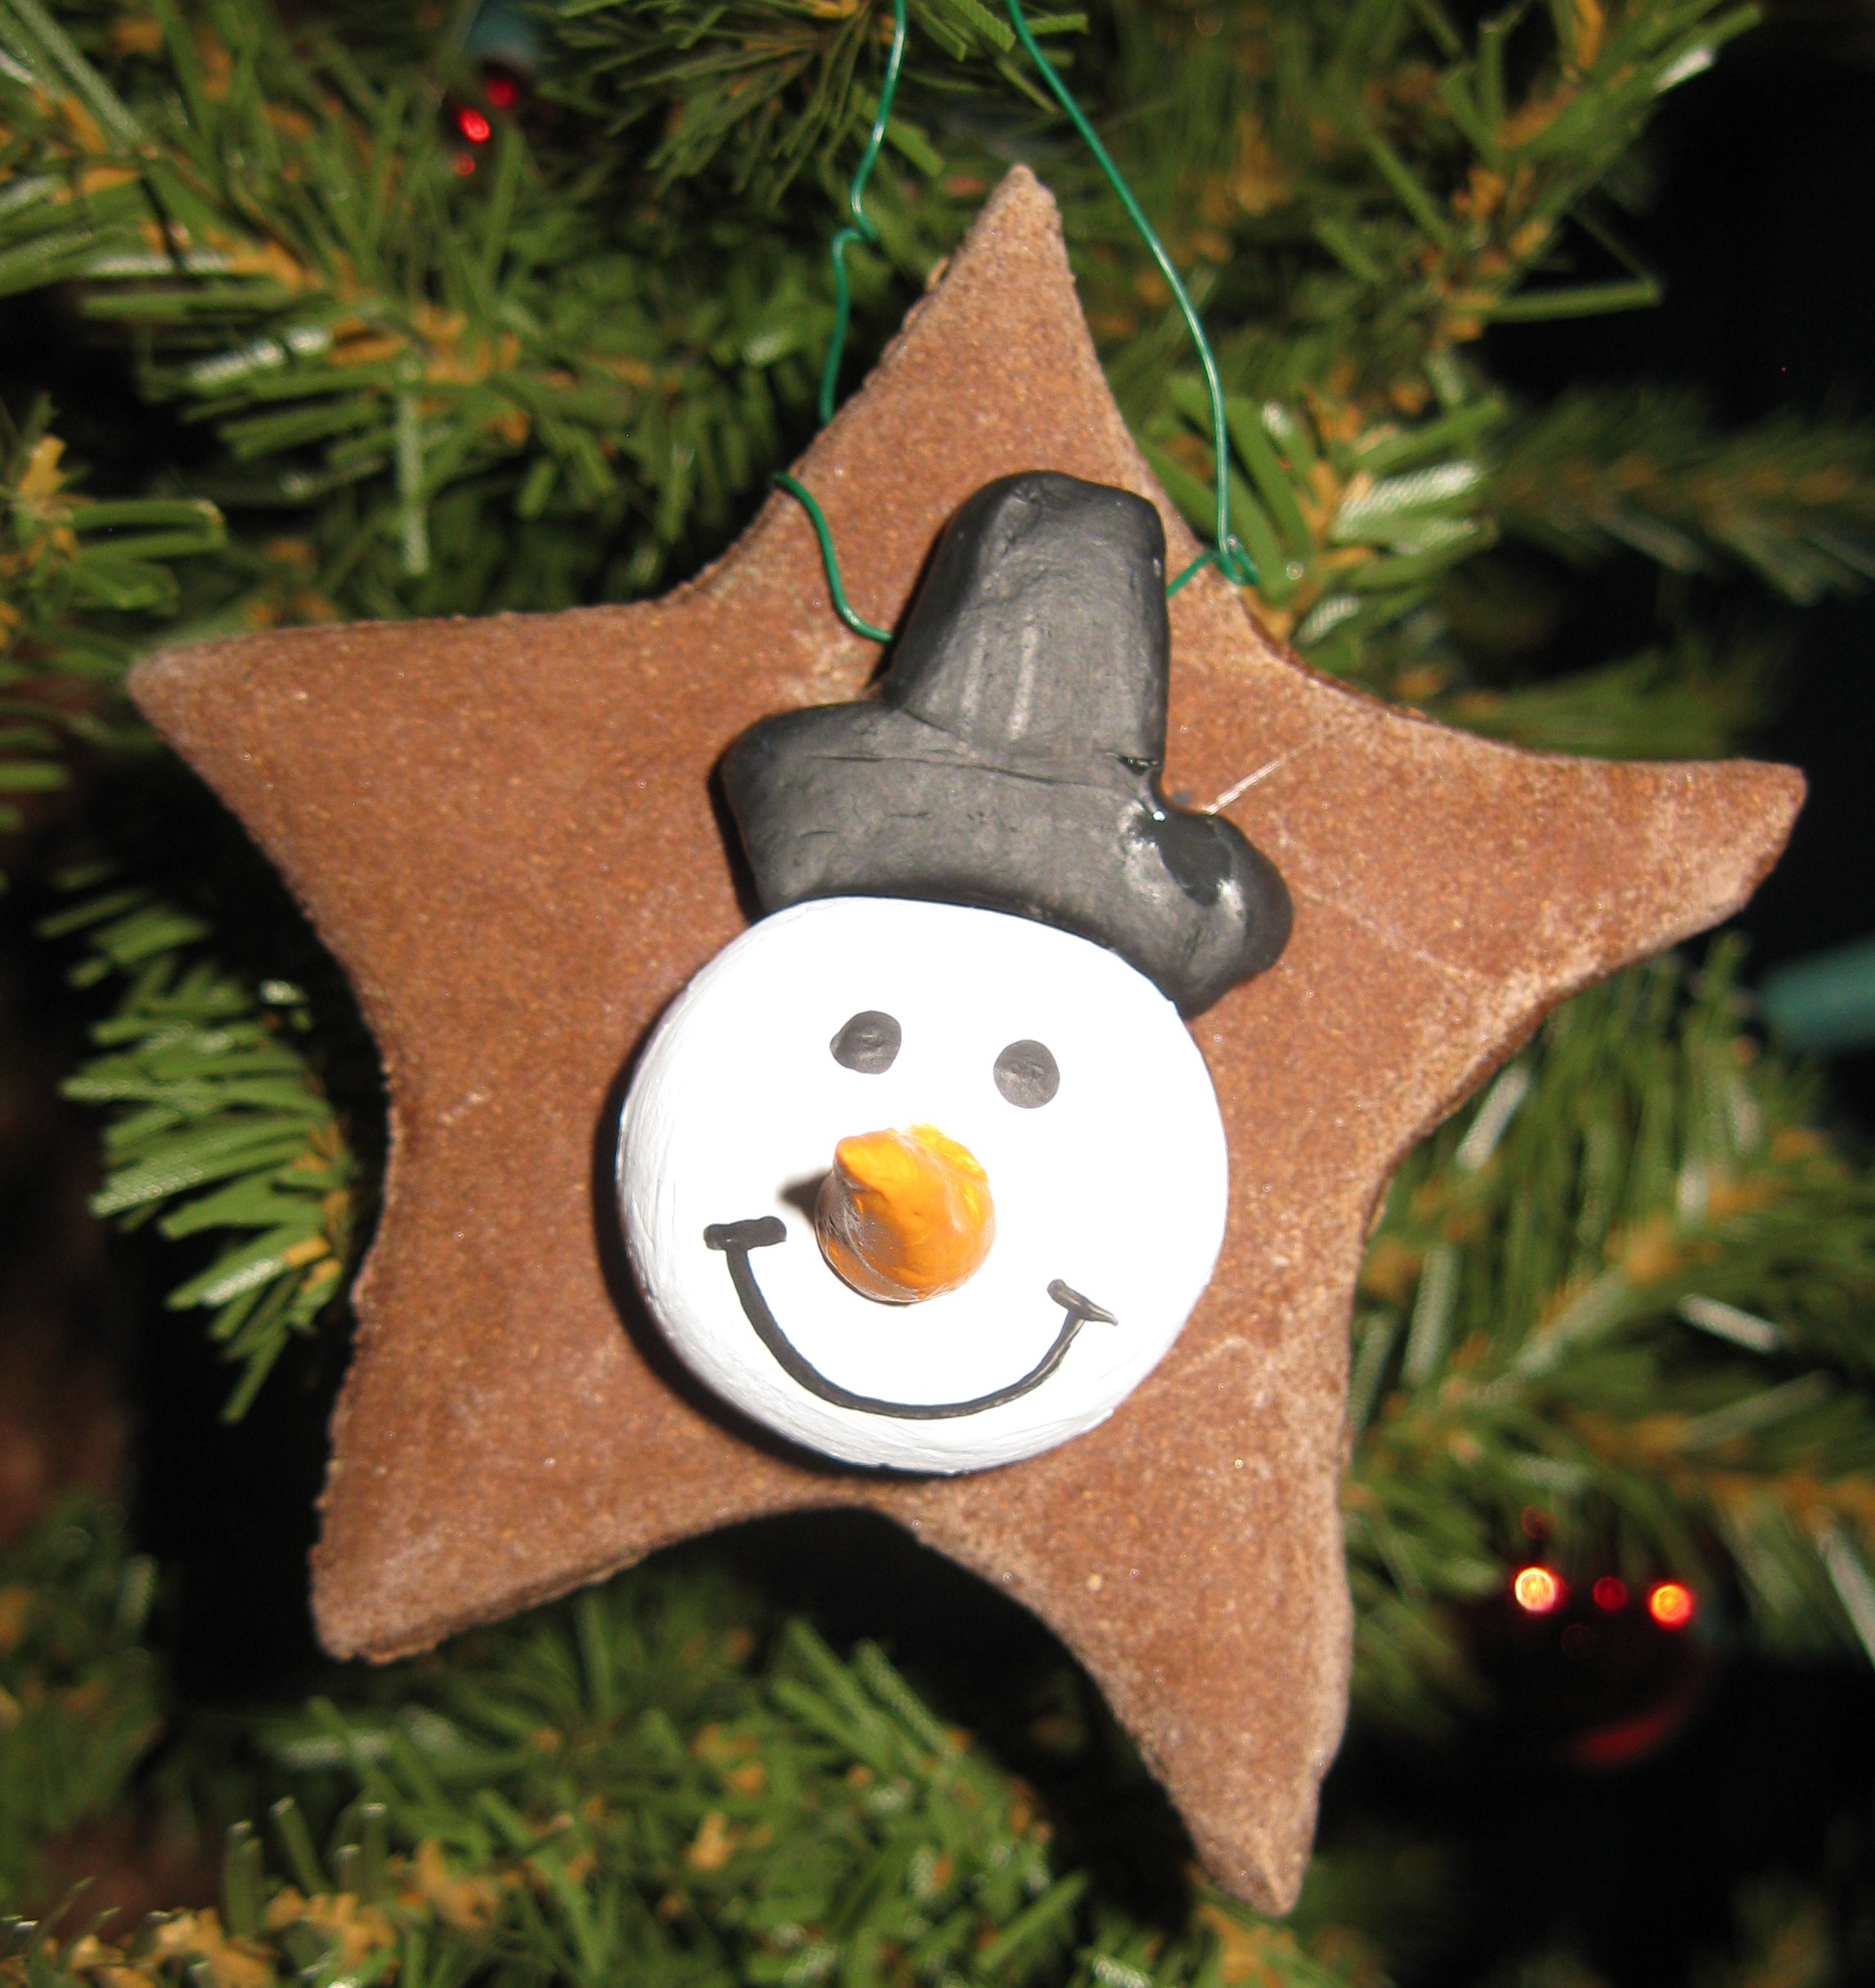 Types of home made ornaments using decoupage dough clay amp fabric